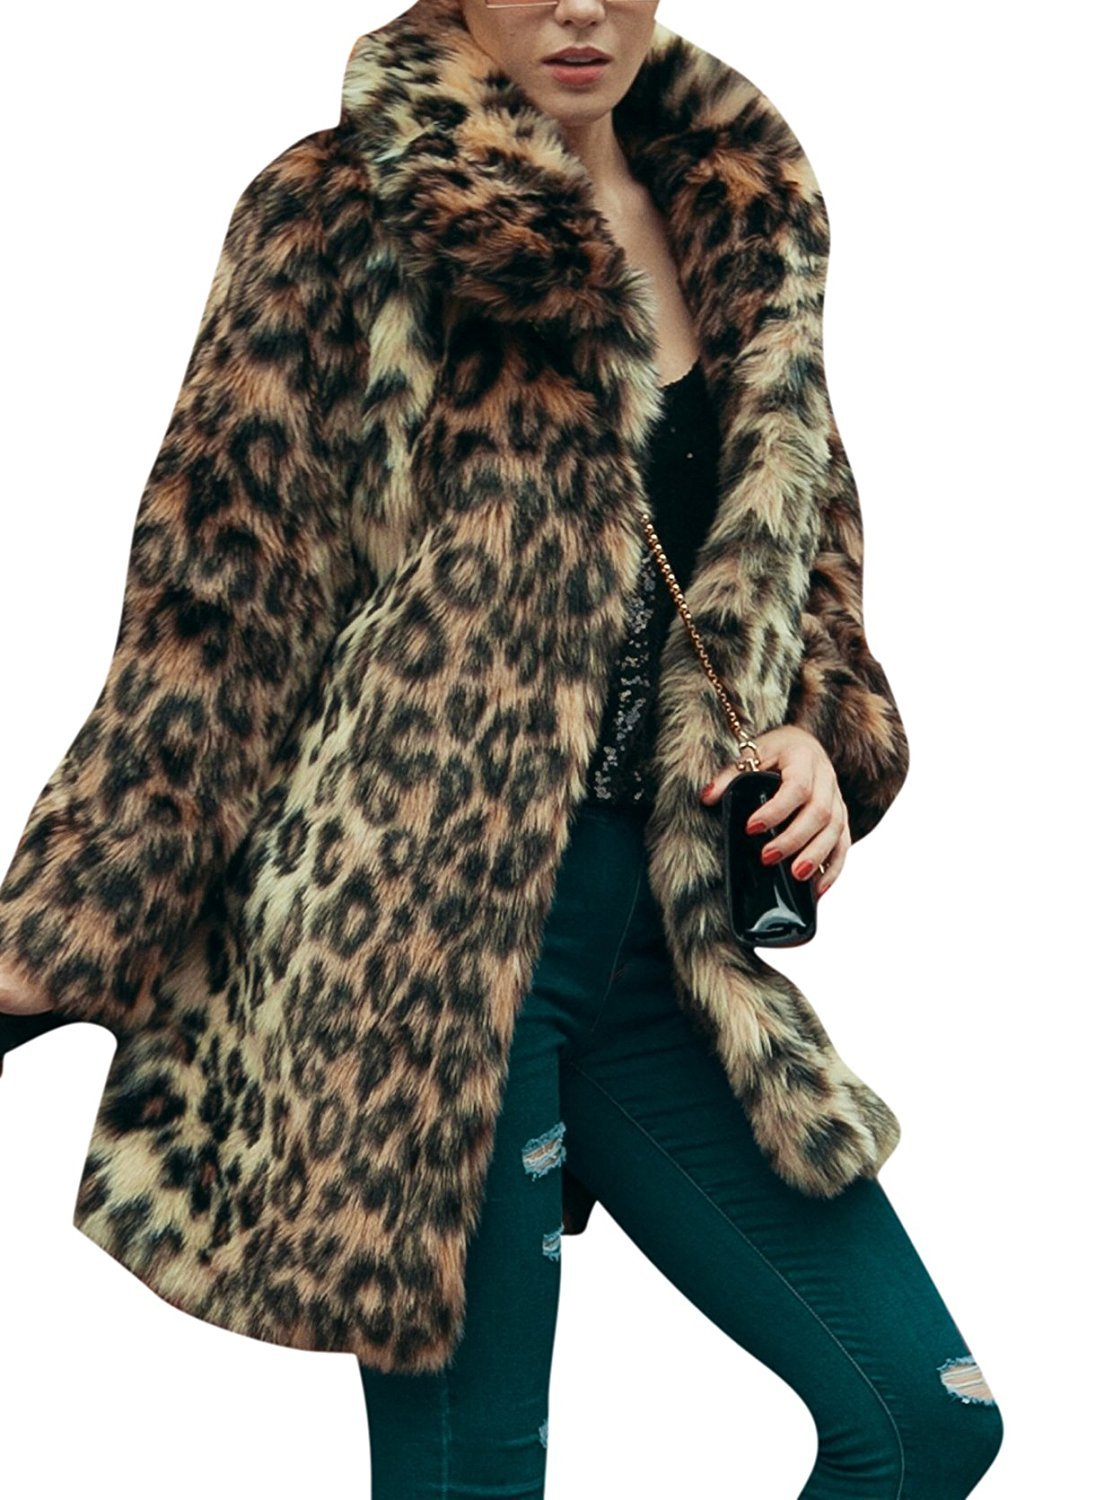 Women's Leopard Sexy Faux Fur Jacket Coat Long Sleeve Winter Warm Fluffy Parka Overcoat Outwear Tops (US 8 = Asian XL)